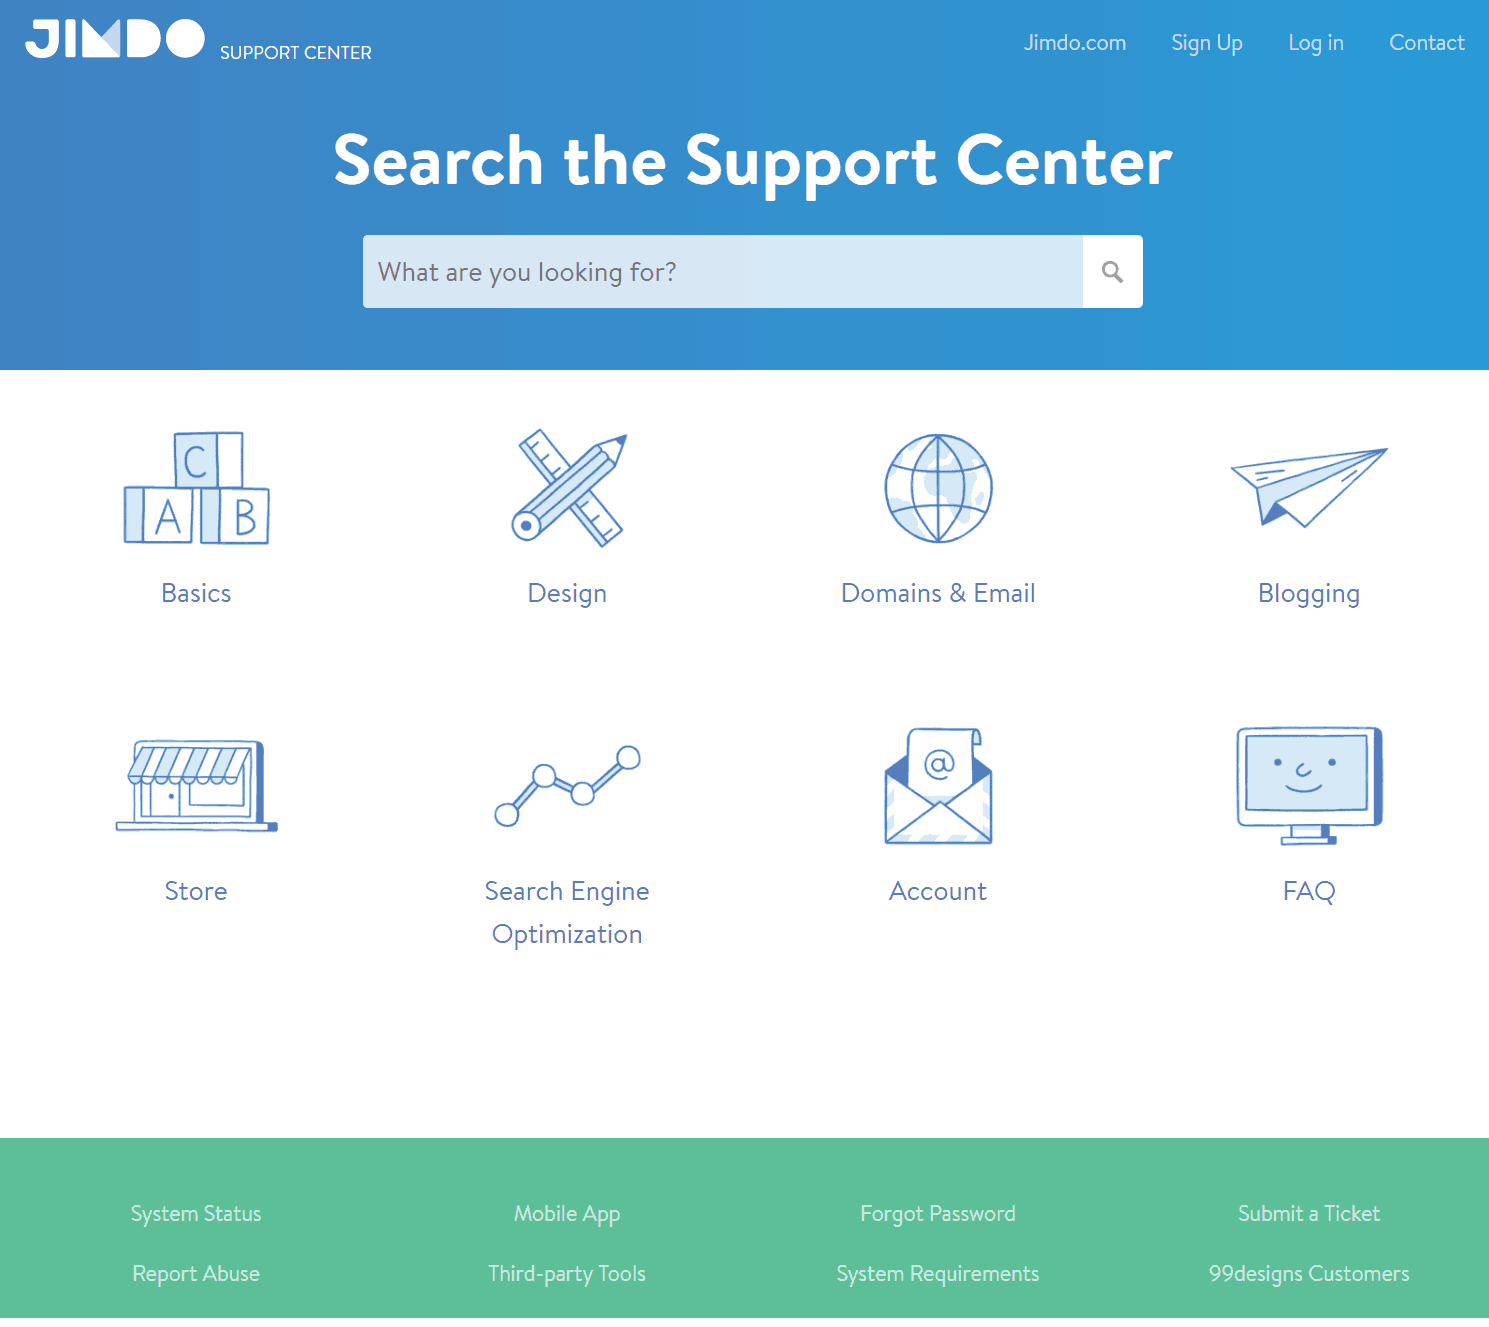 Jimdo Support Center